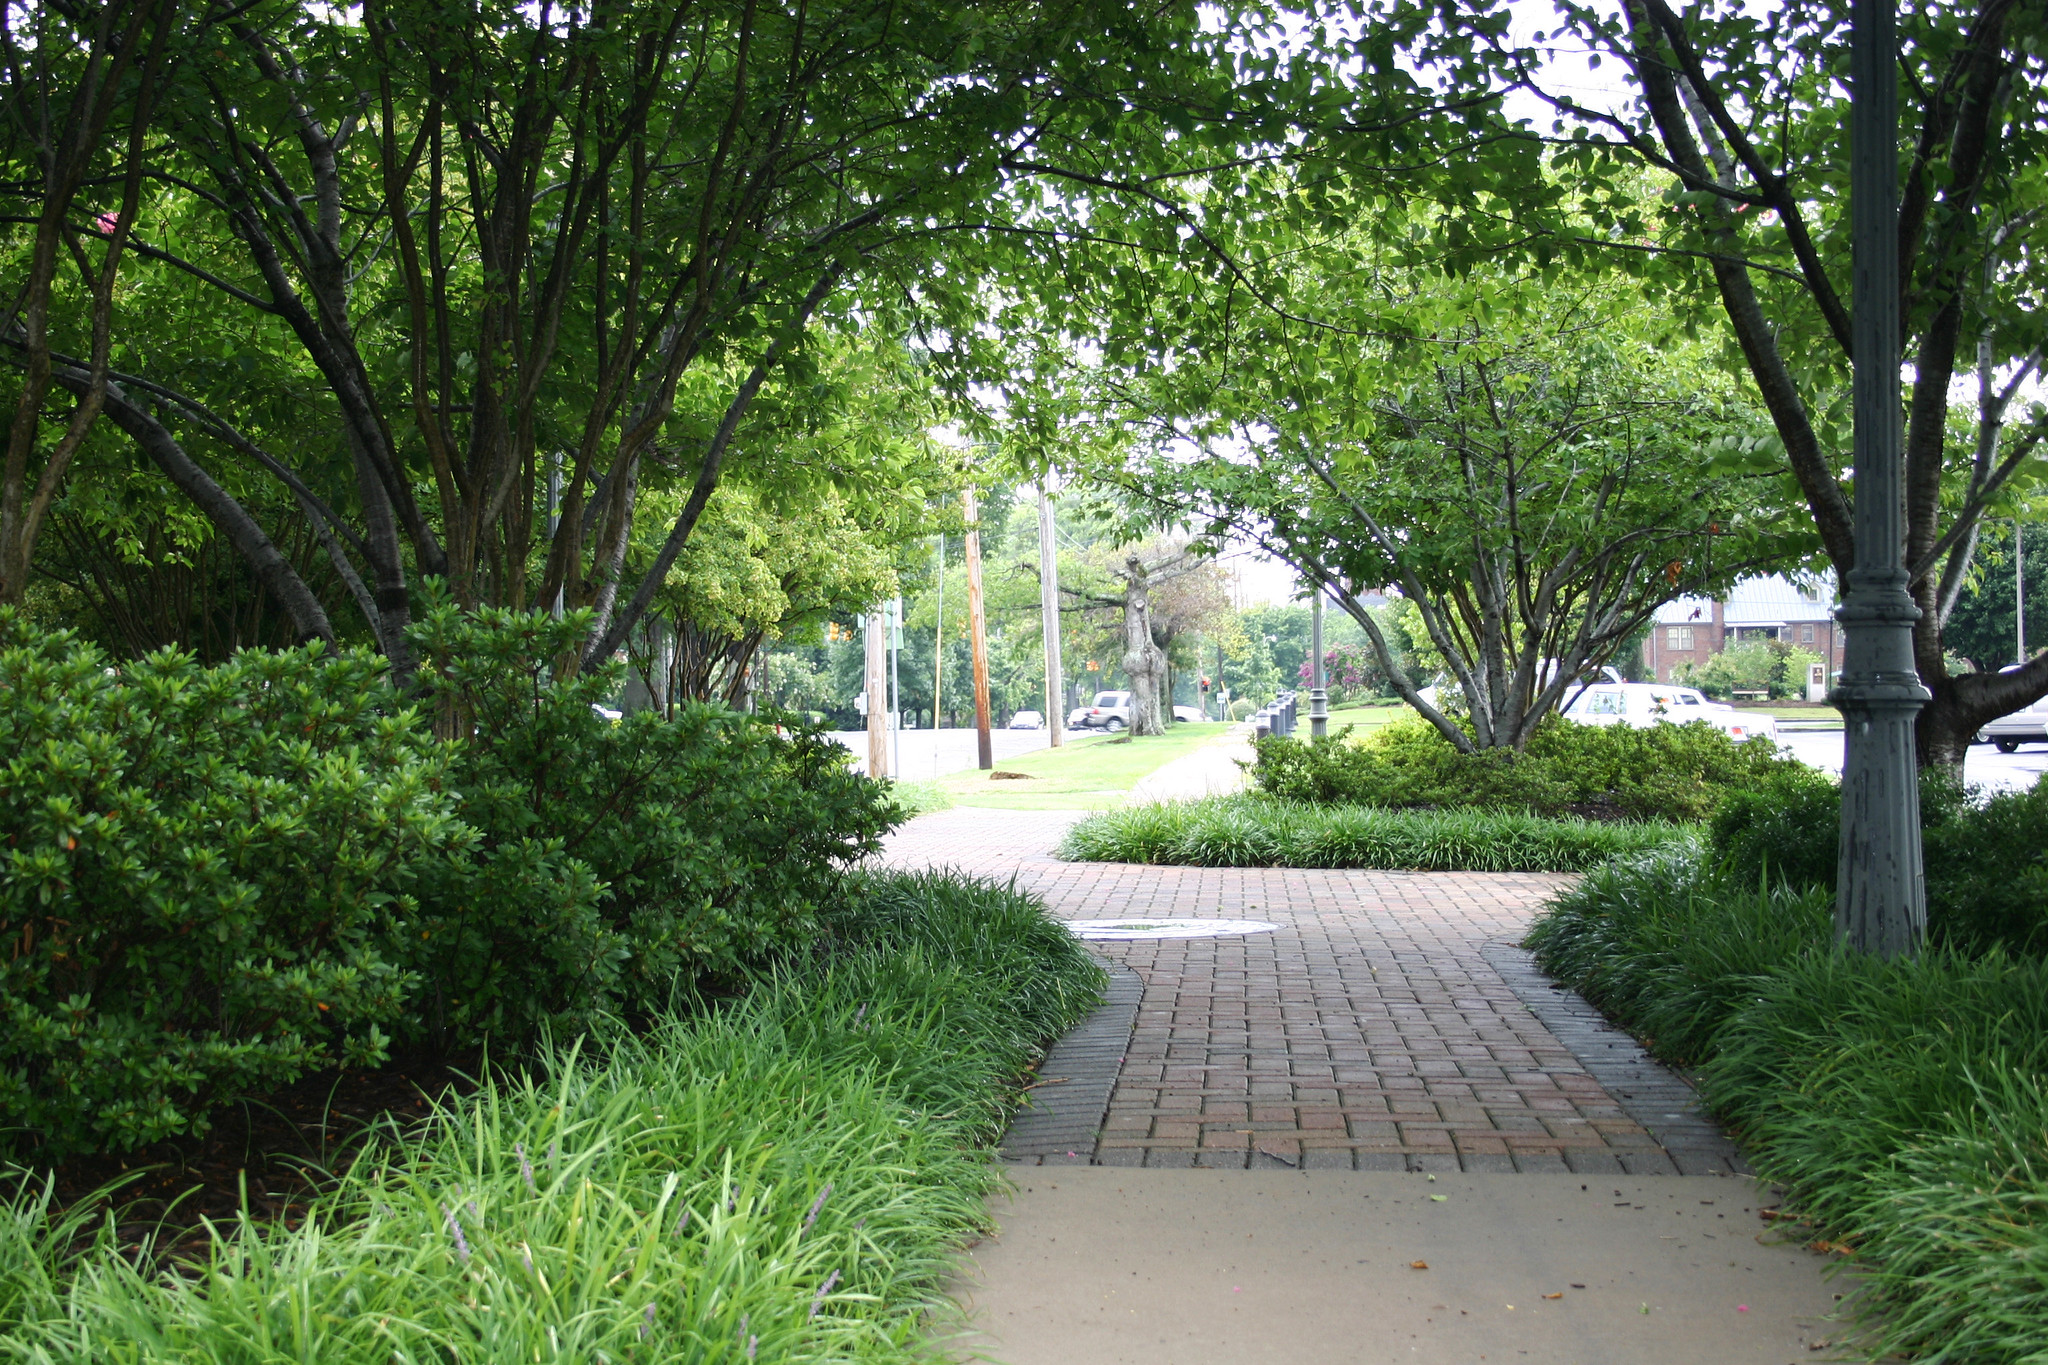 Urban trees and landscaping